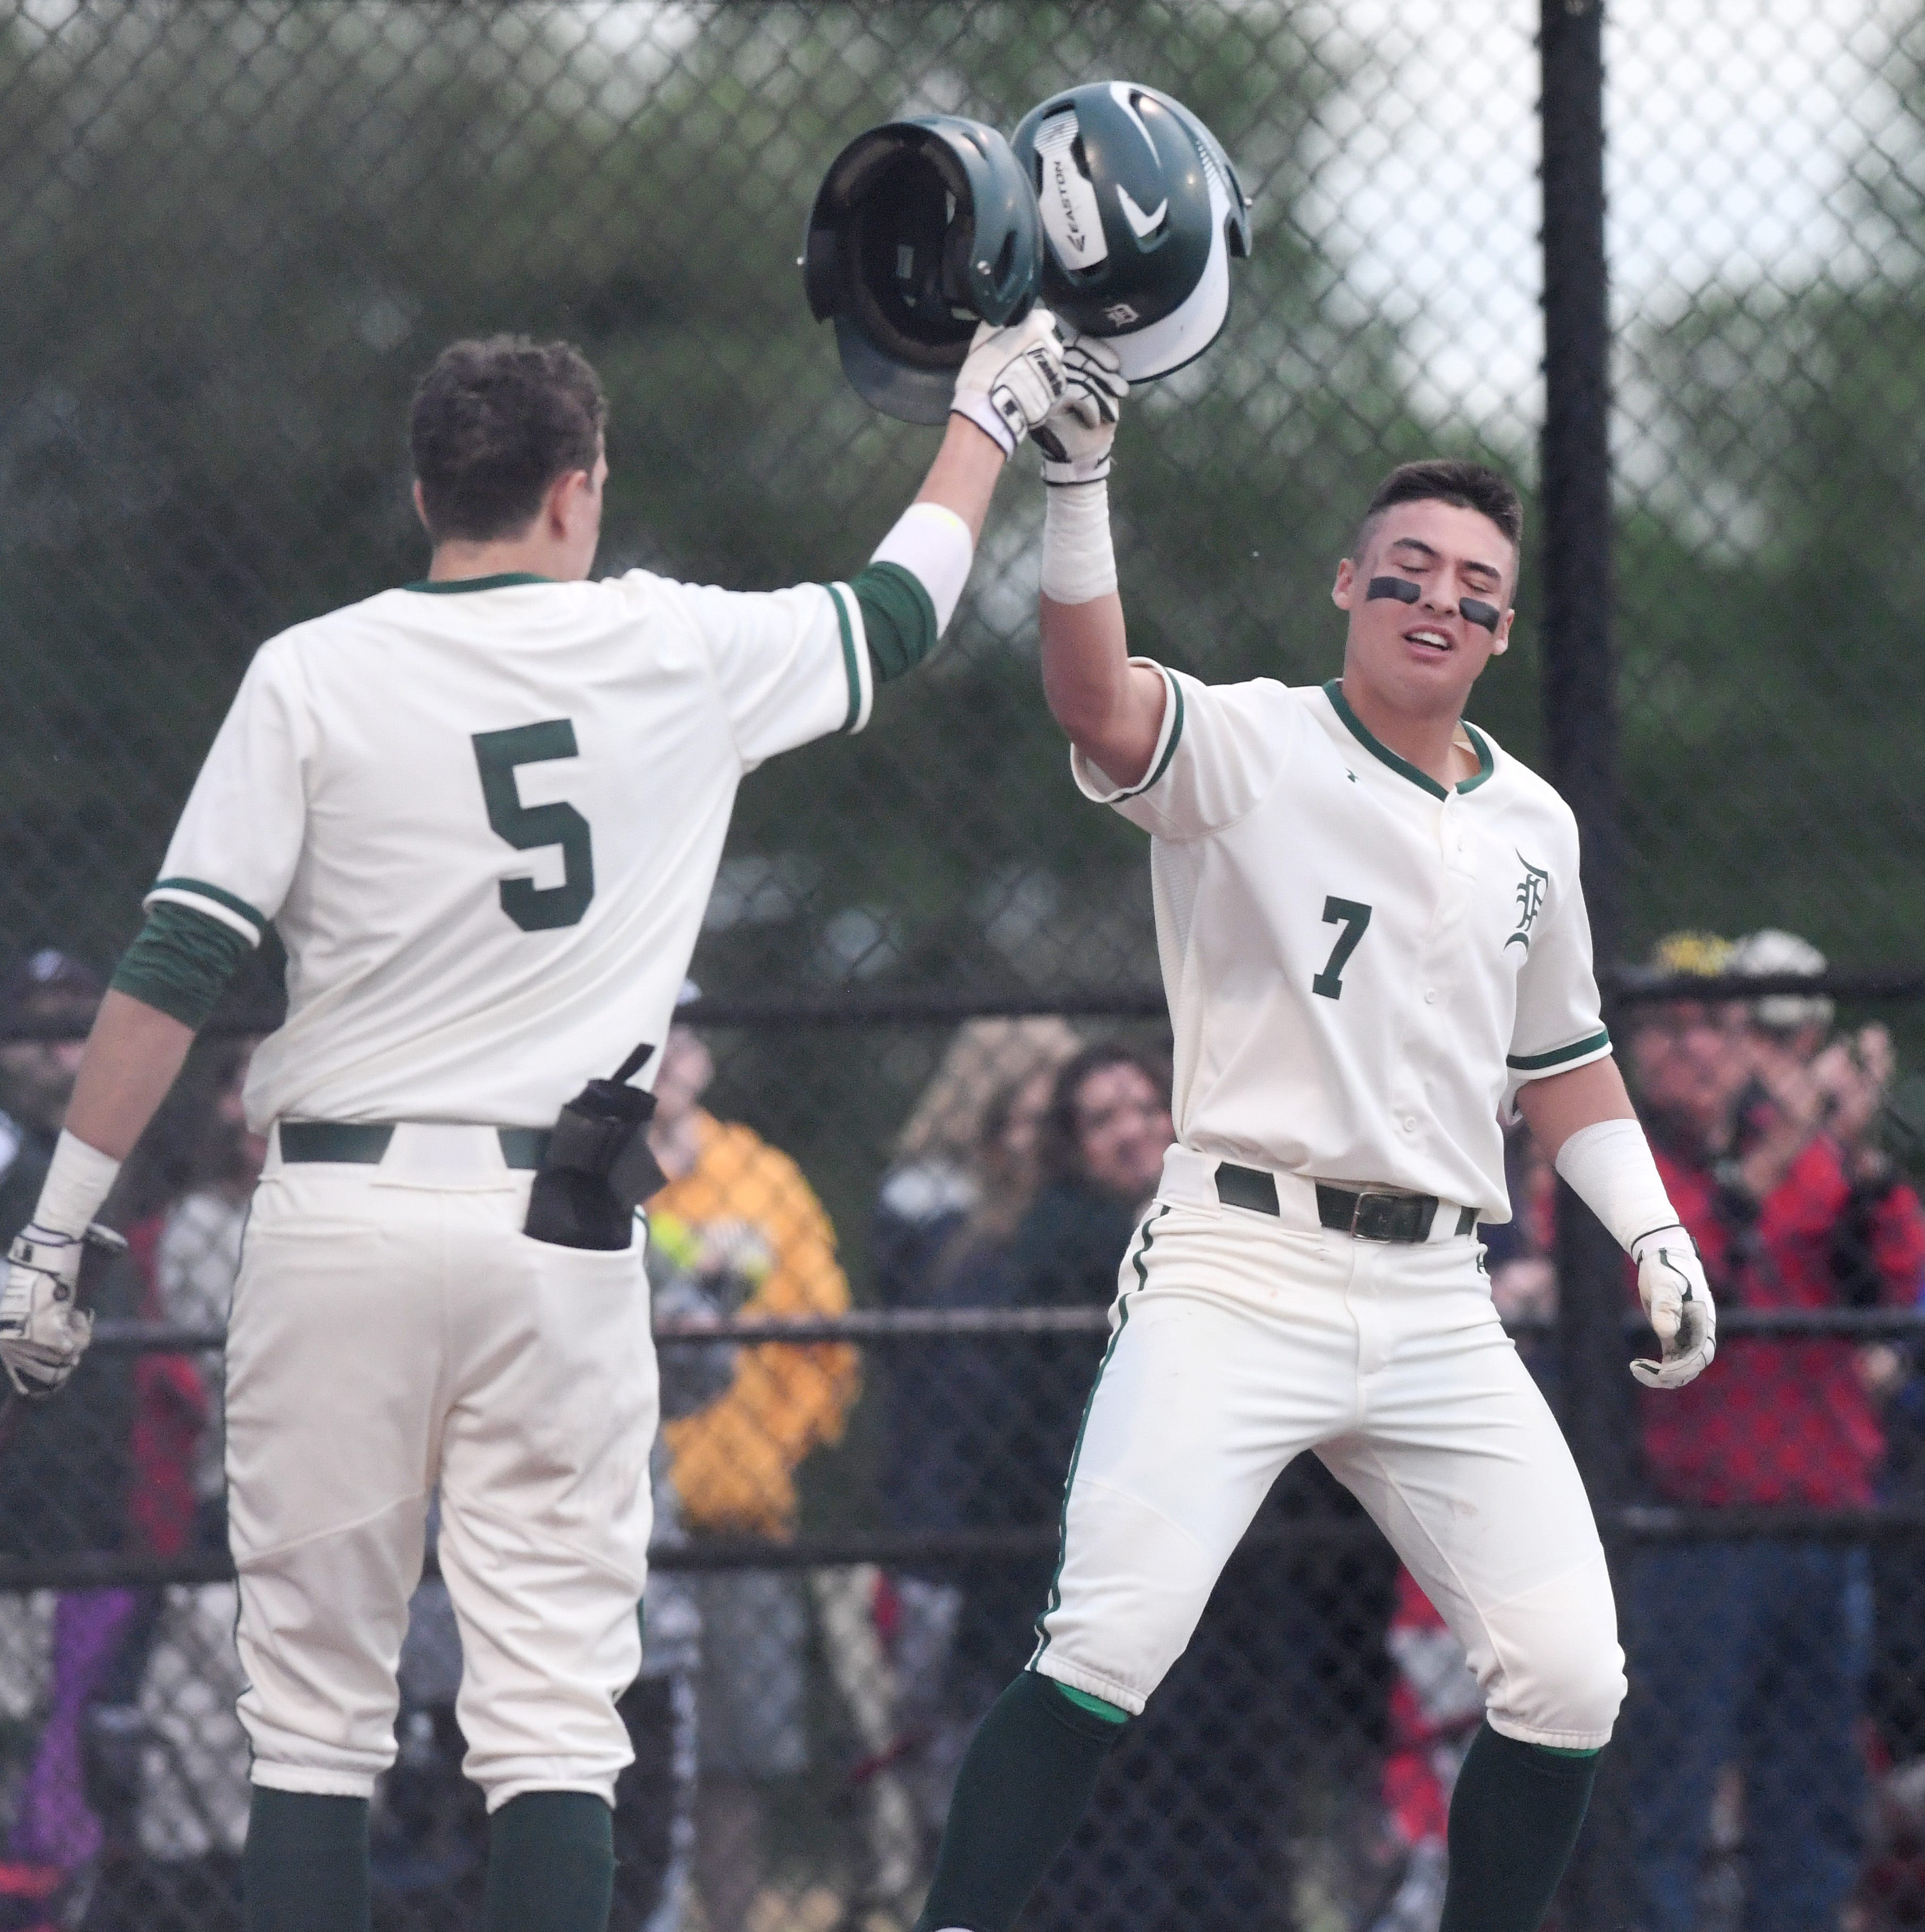 Delbarton shortstop Anthony Volpe celebrates after hitting a home run against West Morris during the Morris County Tournament baseball final at Montville High School on Saturday, May 11, 2019.